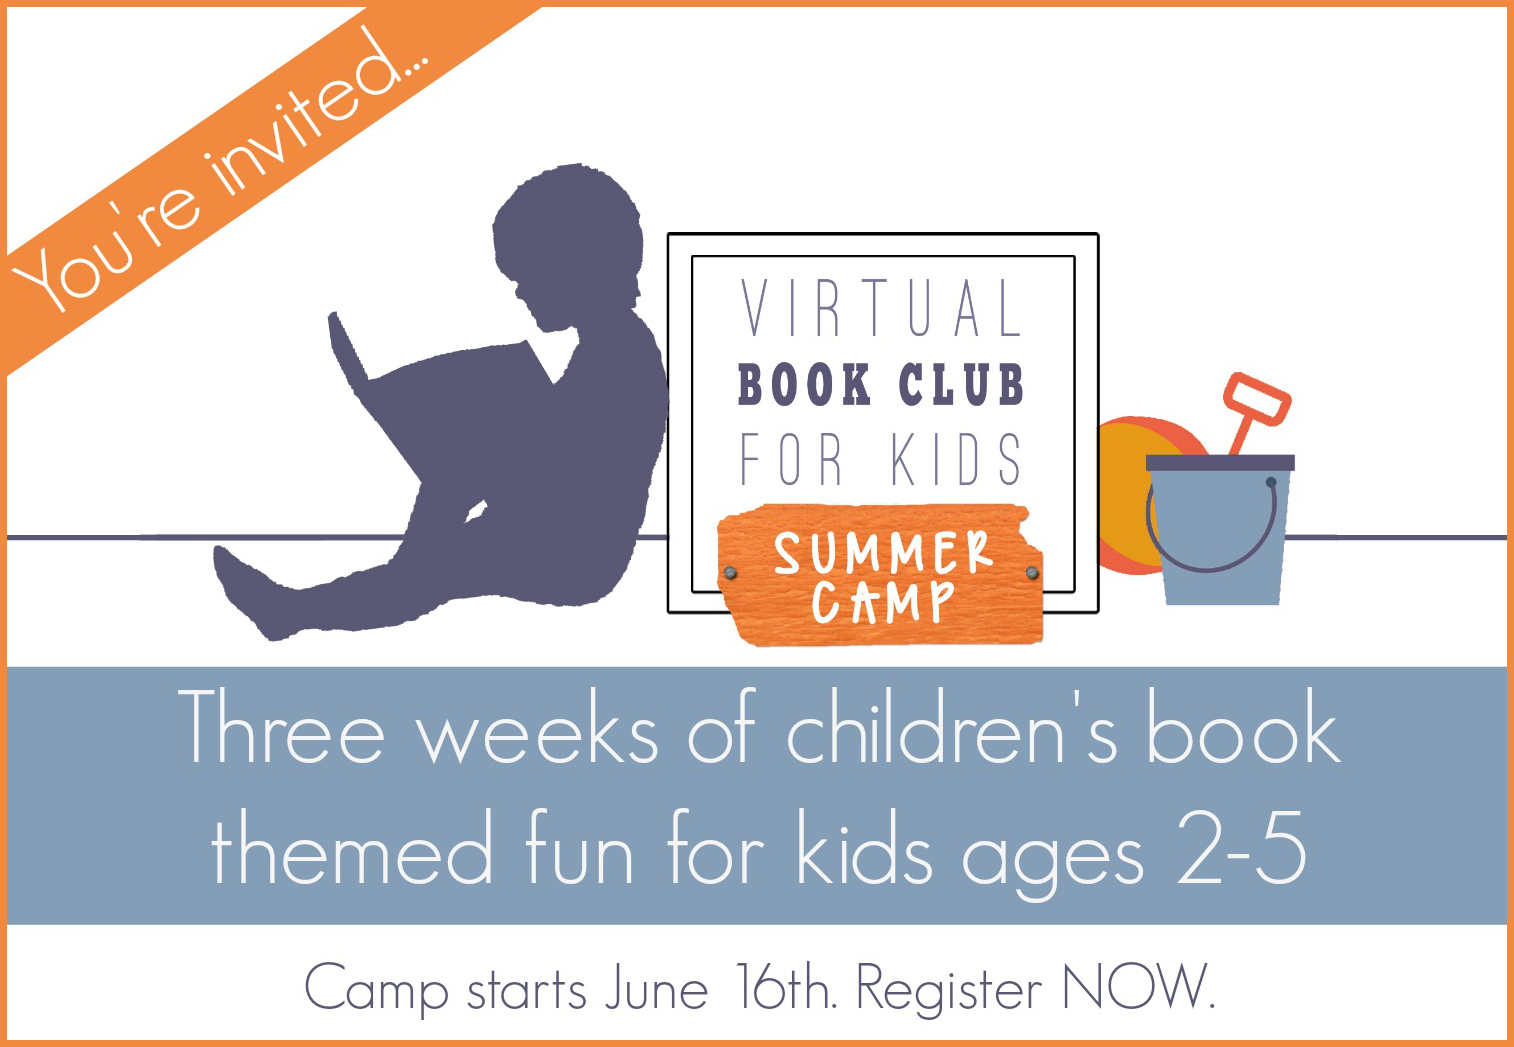 Toddler Approved!: Announcing Virtual Book Club for Kids Summer Camp ...